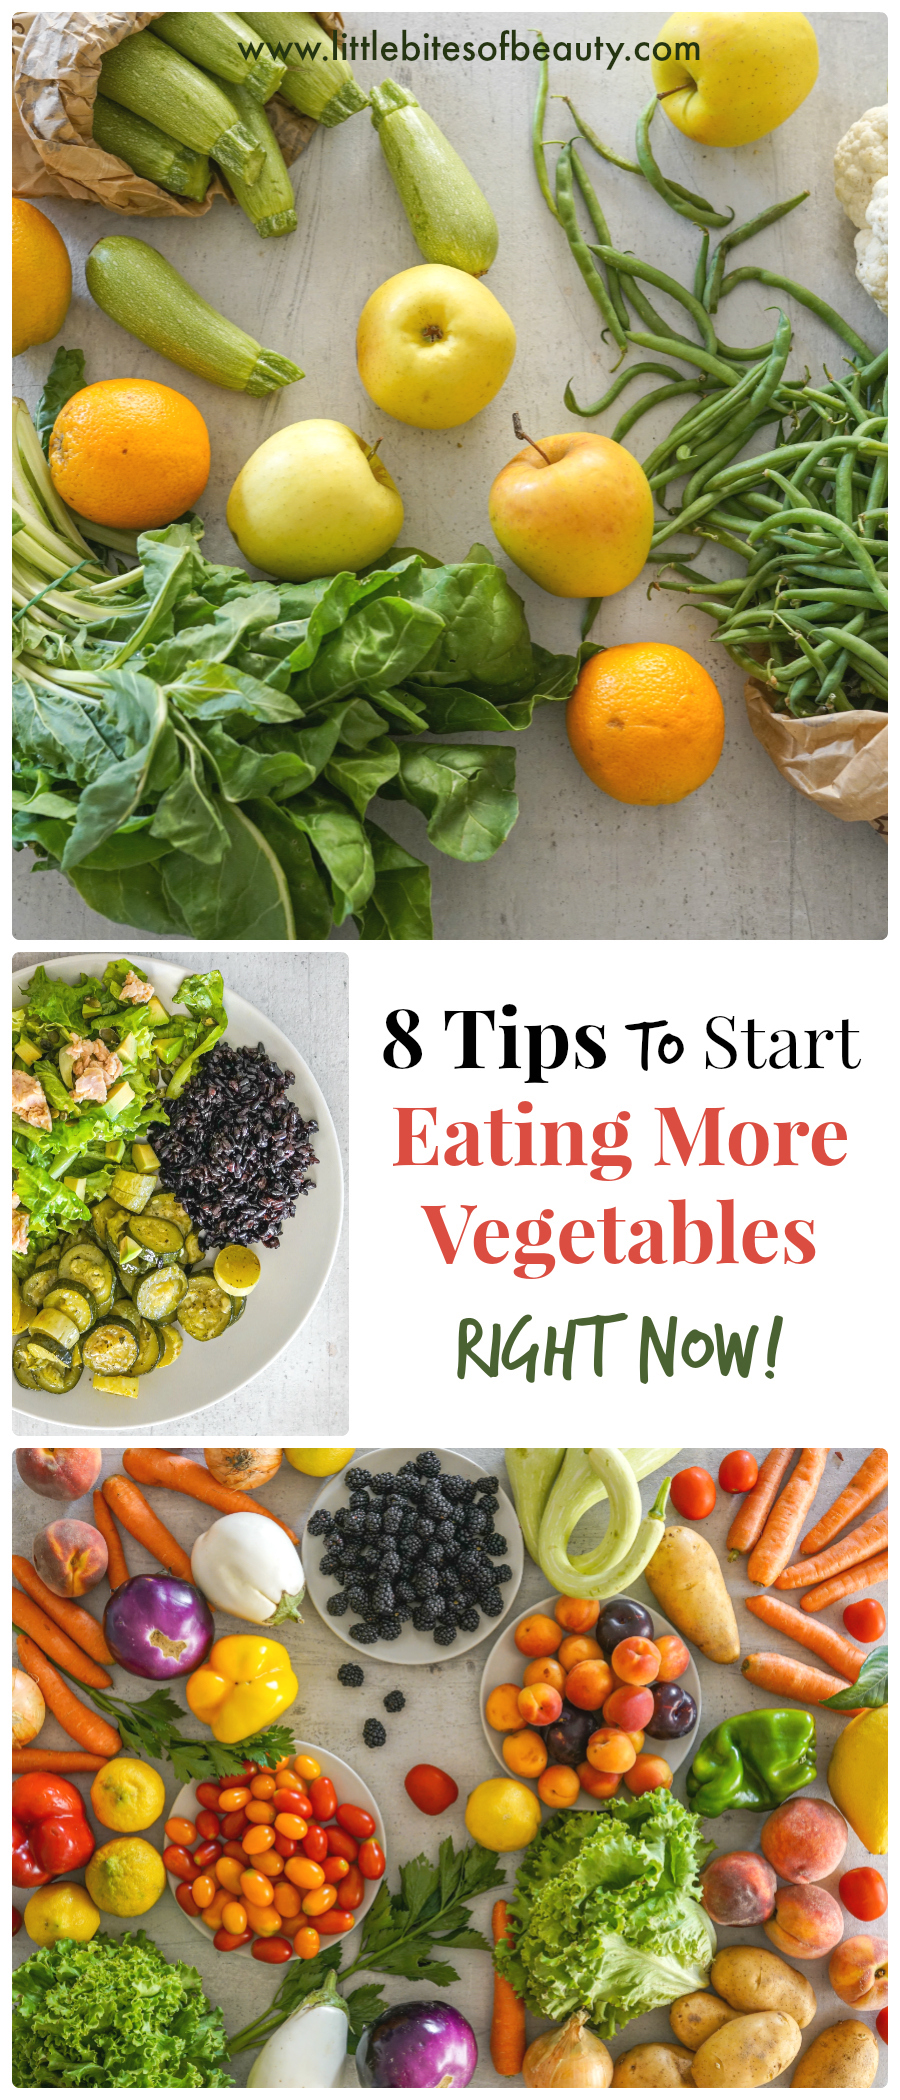 8 Tips to Start Eating More Vegetables Right Now 1